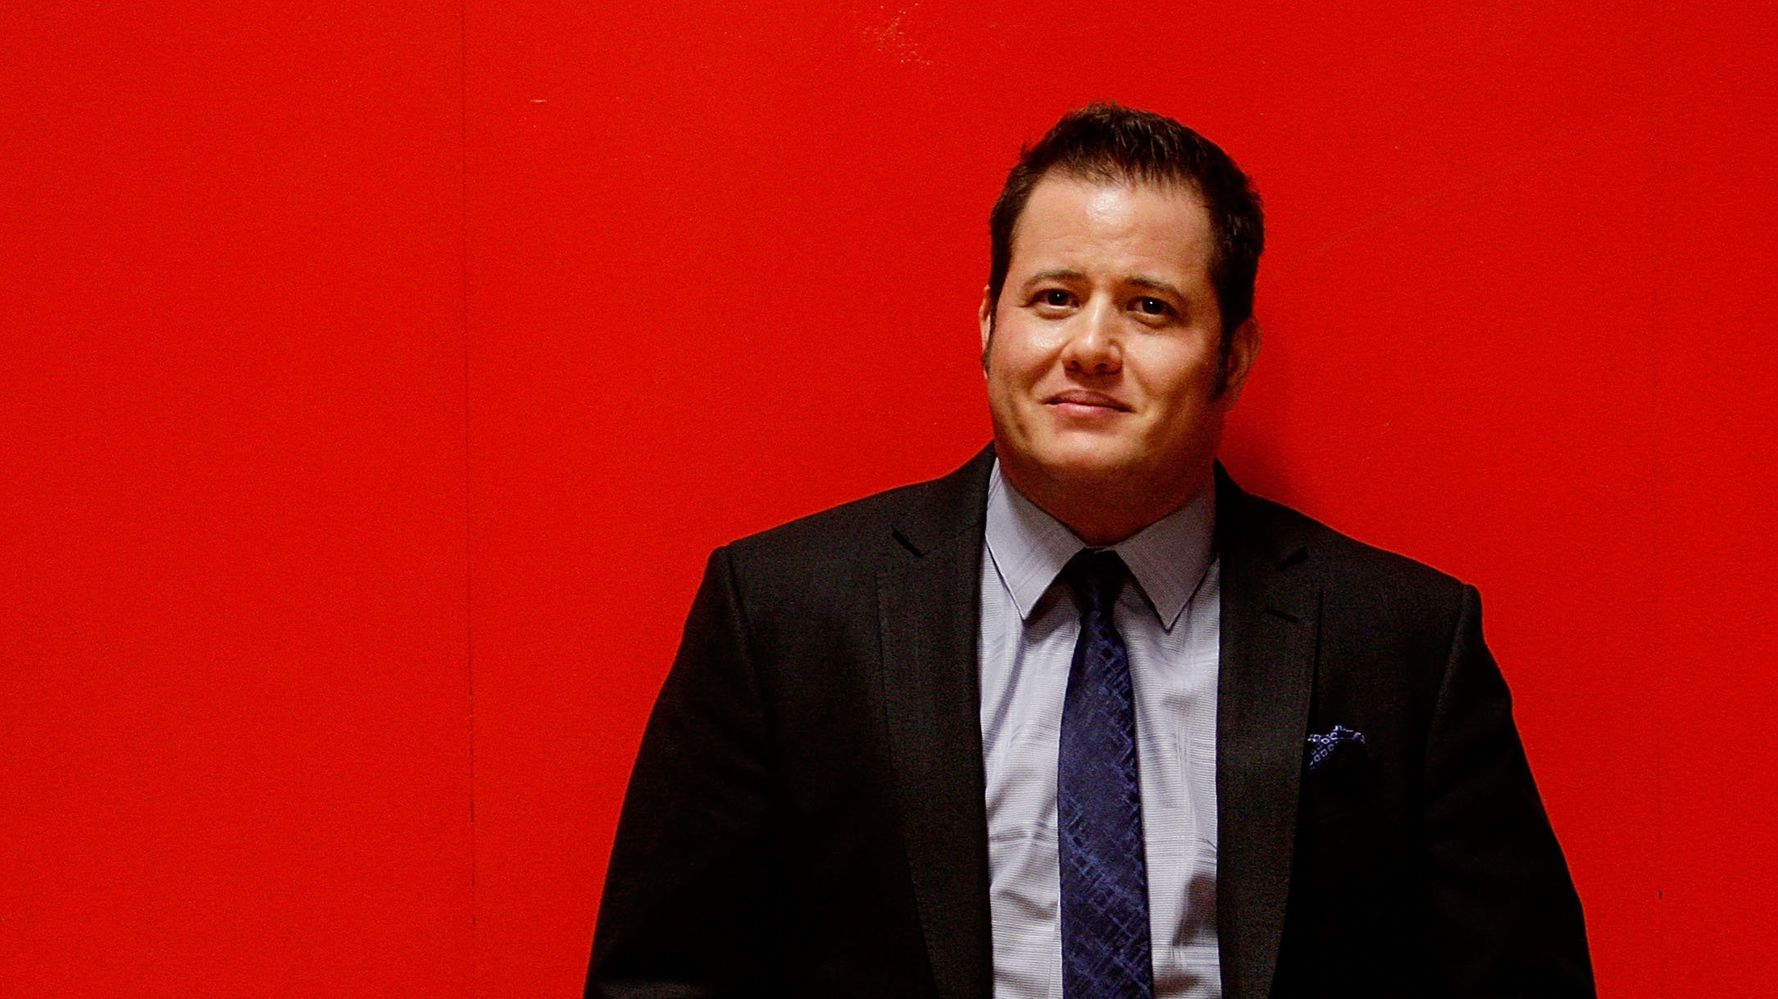 is chaz bono in american horror story